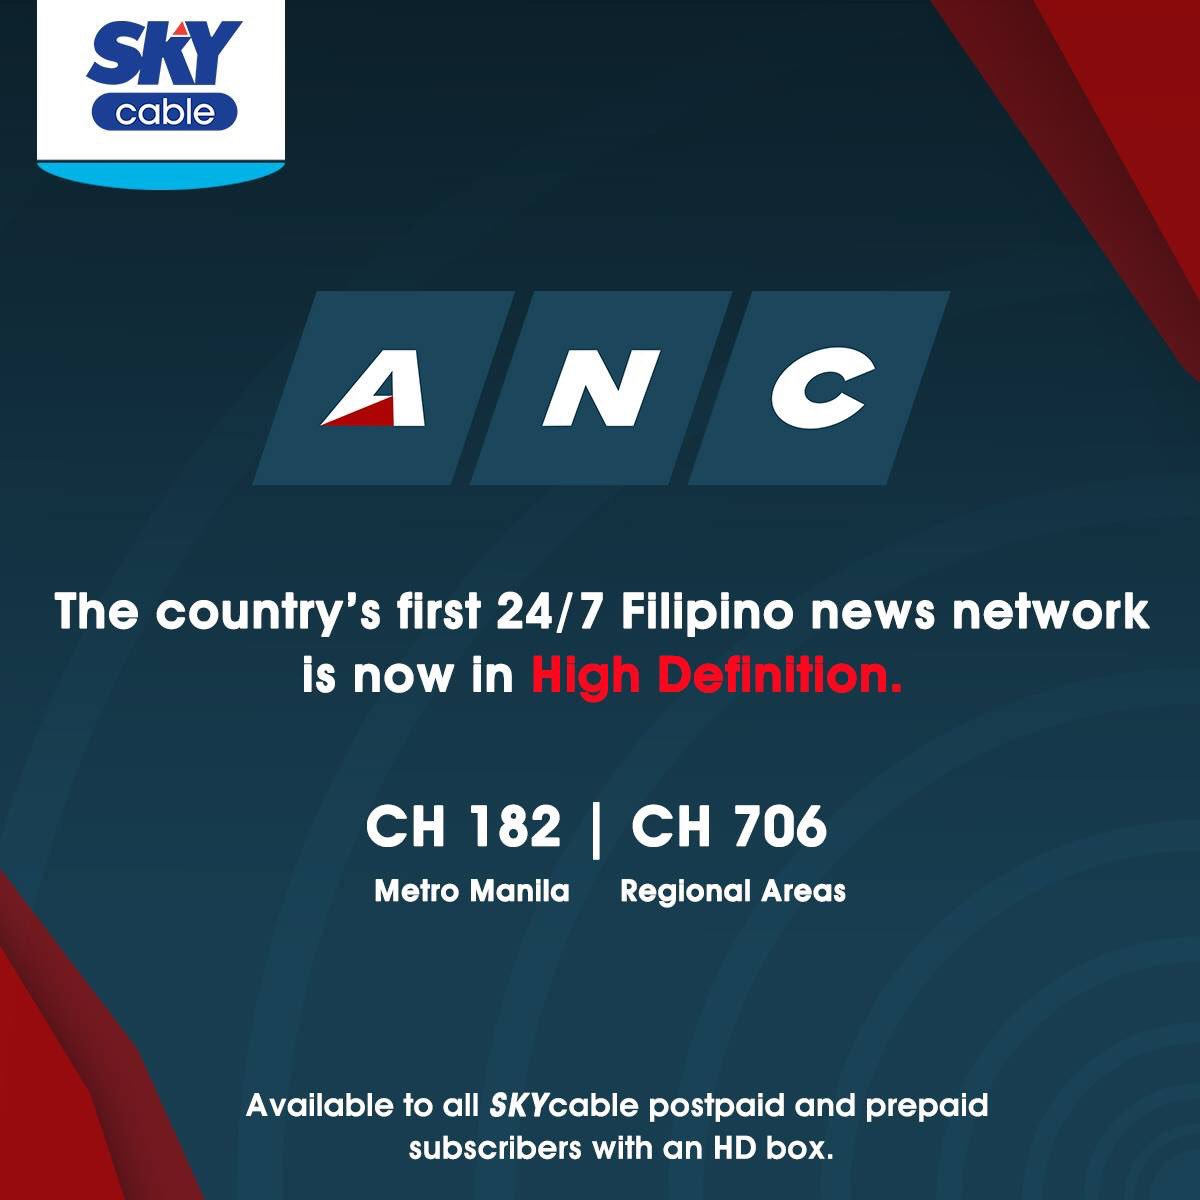 Sky On Twitter Starting Today Ancalerts The Country S First 24 7 Filipino News Network Is Now In Hd Https T Co Frhsst1pnd Https T Co W2fkhlrwok